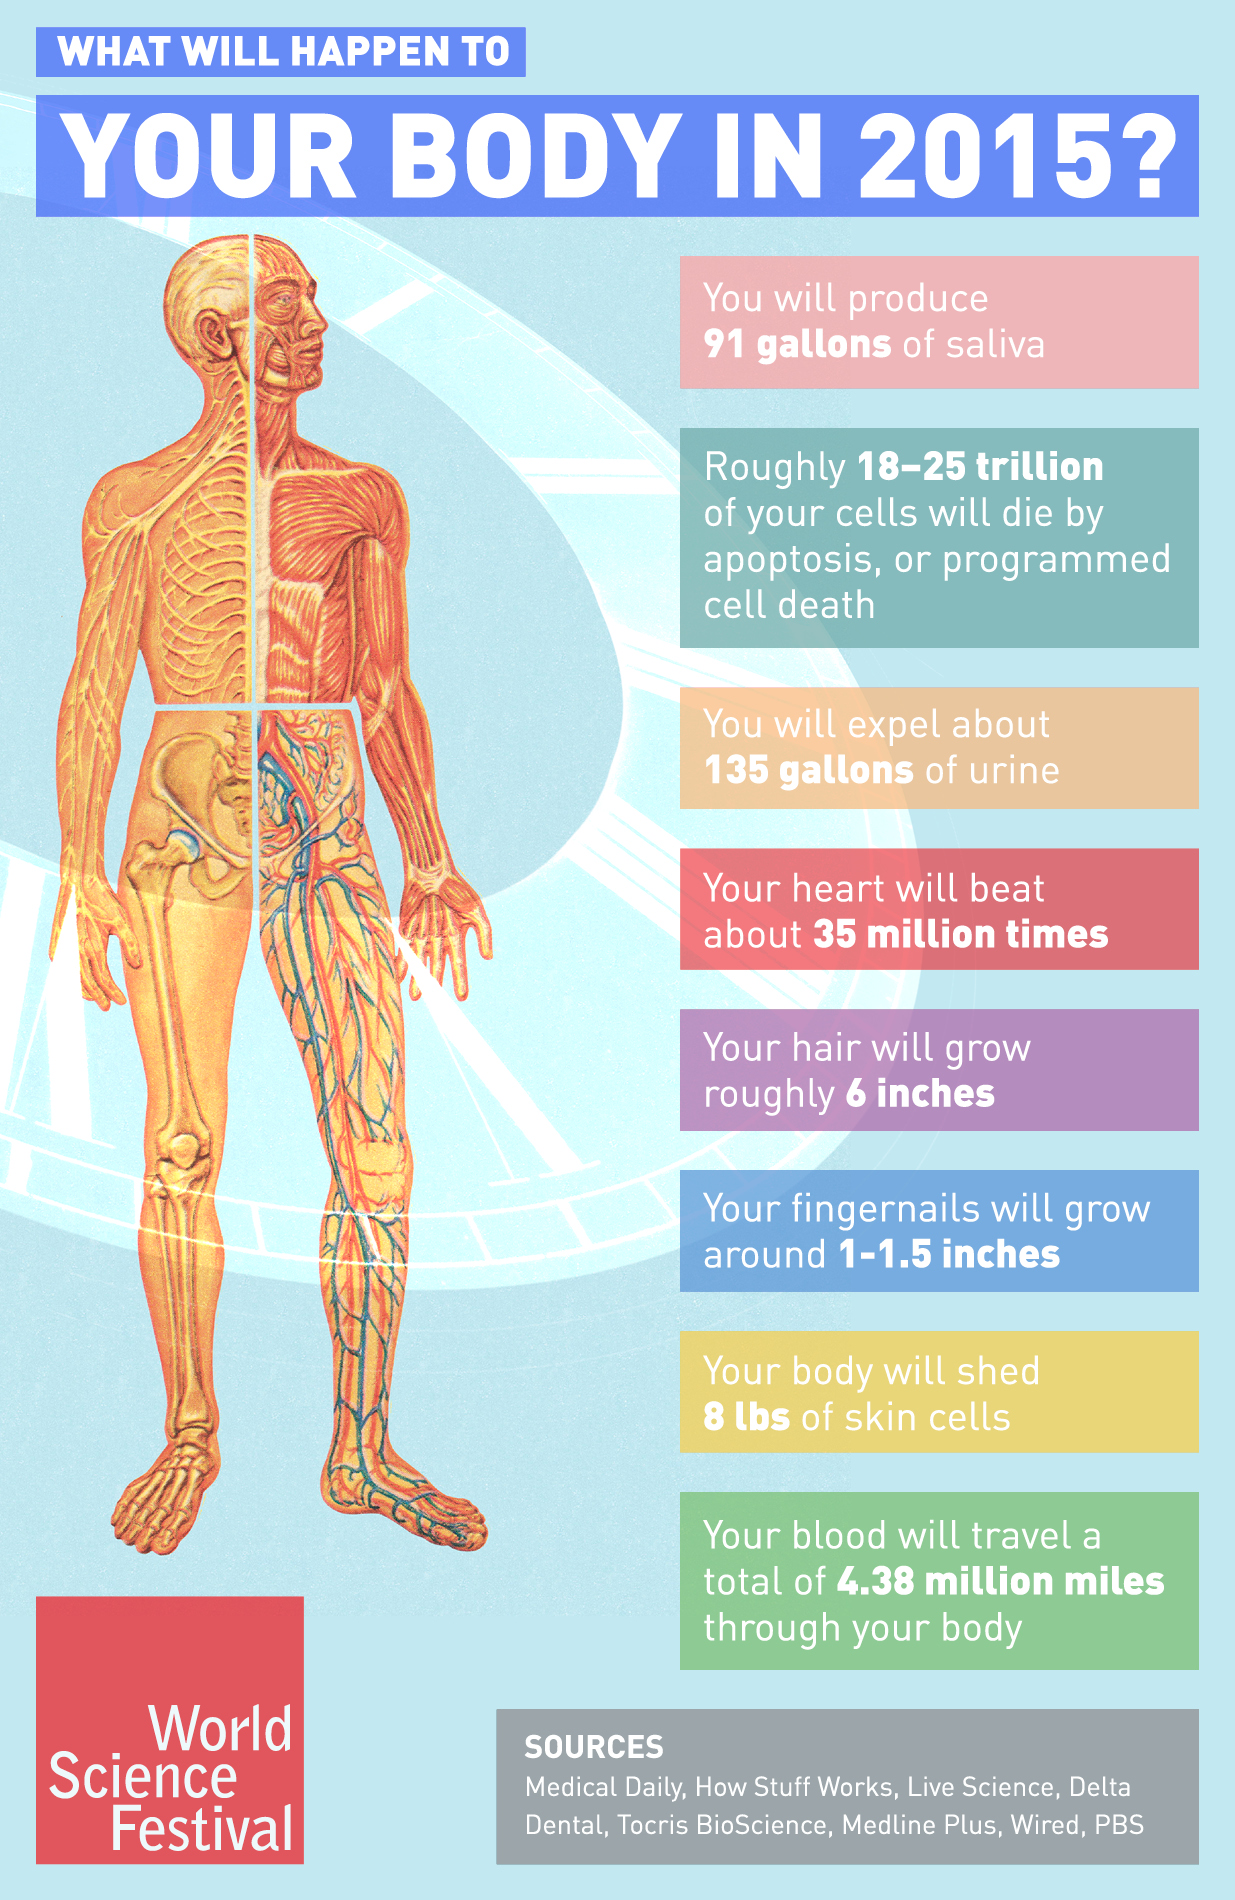 What Will Happen to Your Body in 2015? | World Science ...